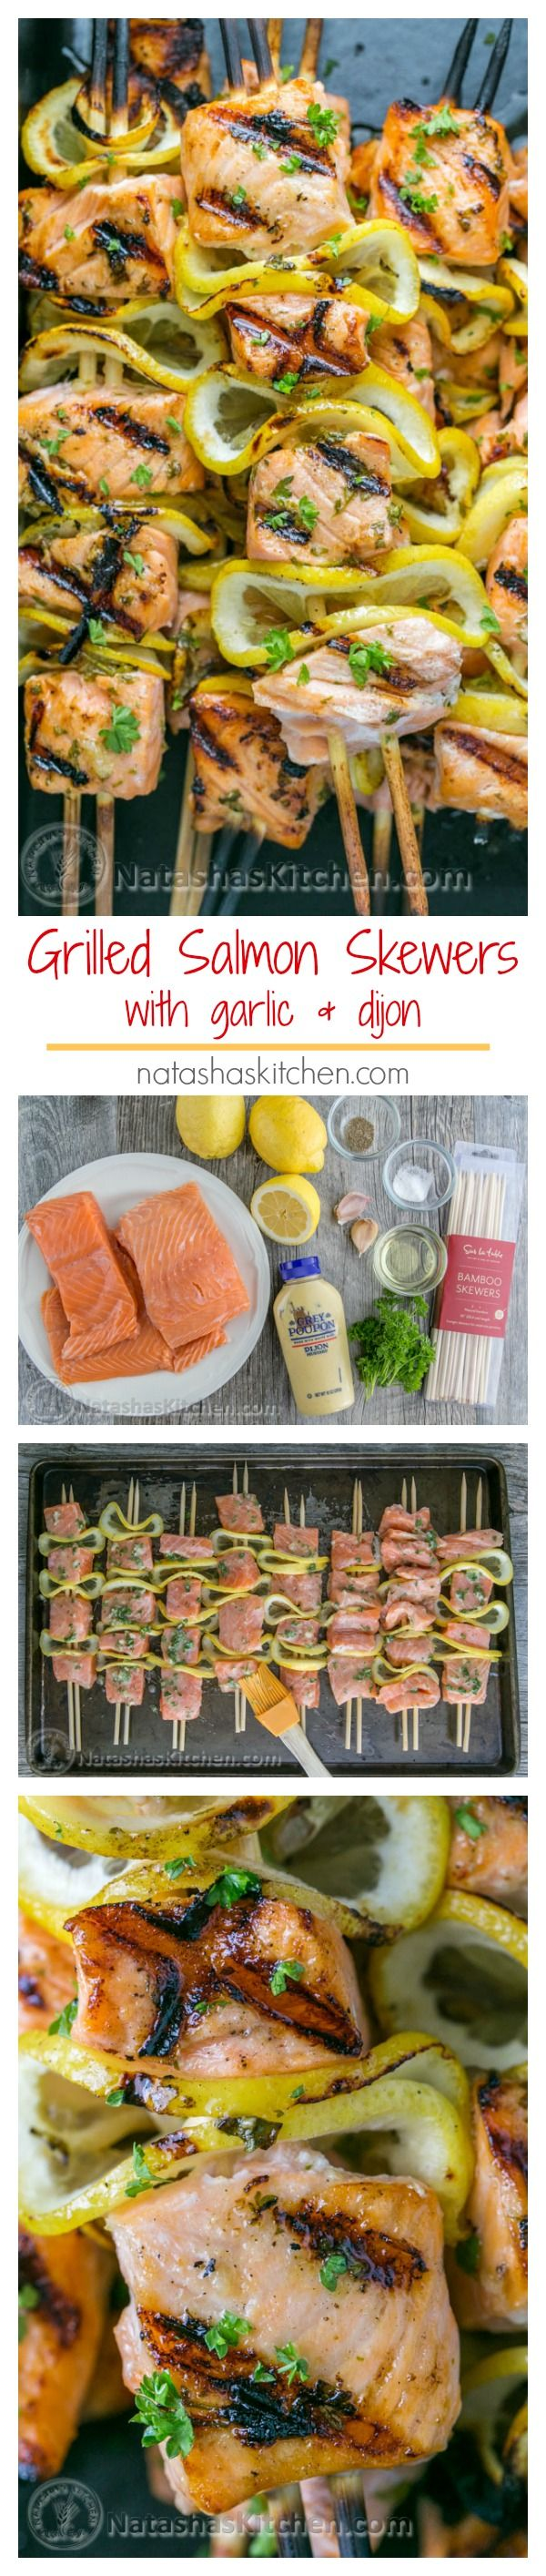 Easy grilled salmon skewers with garlic & dijon. Juicy with incredible flavor & takes less than 30 minutes ~ KEEPER! | natashaskitchen.com #salmonskewers #salmonrecipes #grilledsalmon #salmon #bbqsalmon #easysalmon #lemonsalmon #dijonsalmon #garlicsalmon #bestsalmonrecipes #bbq